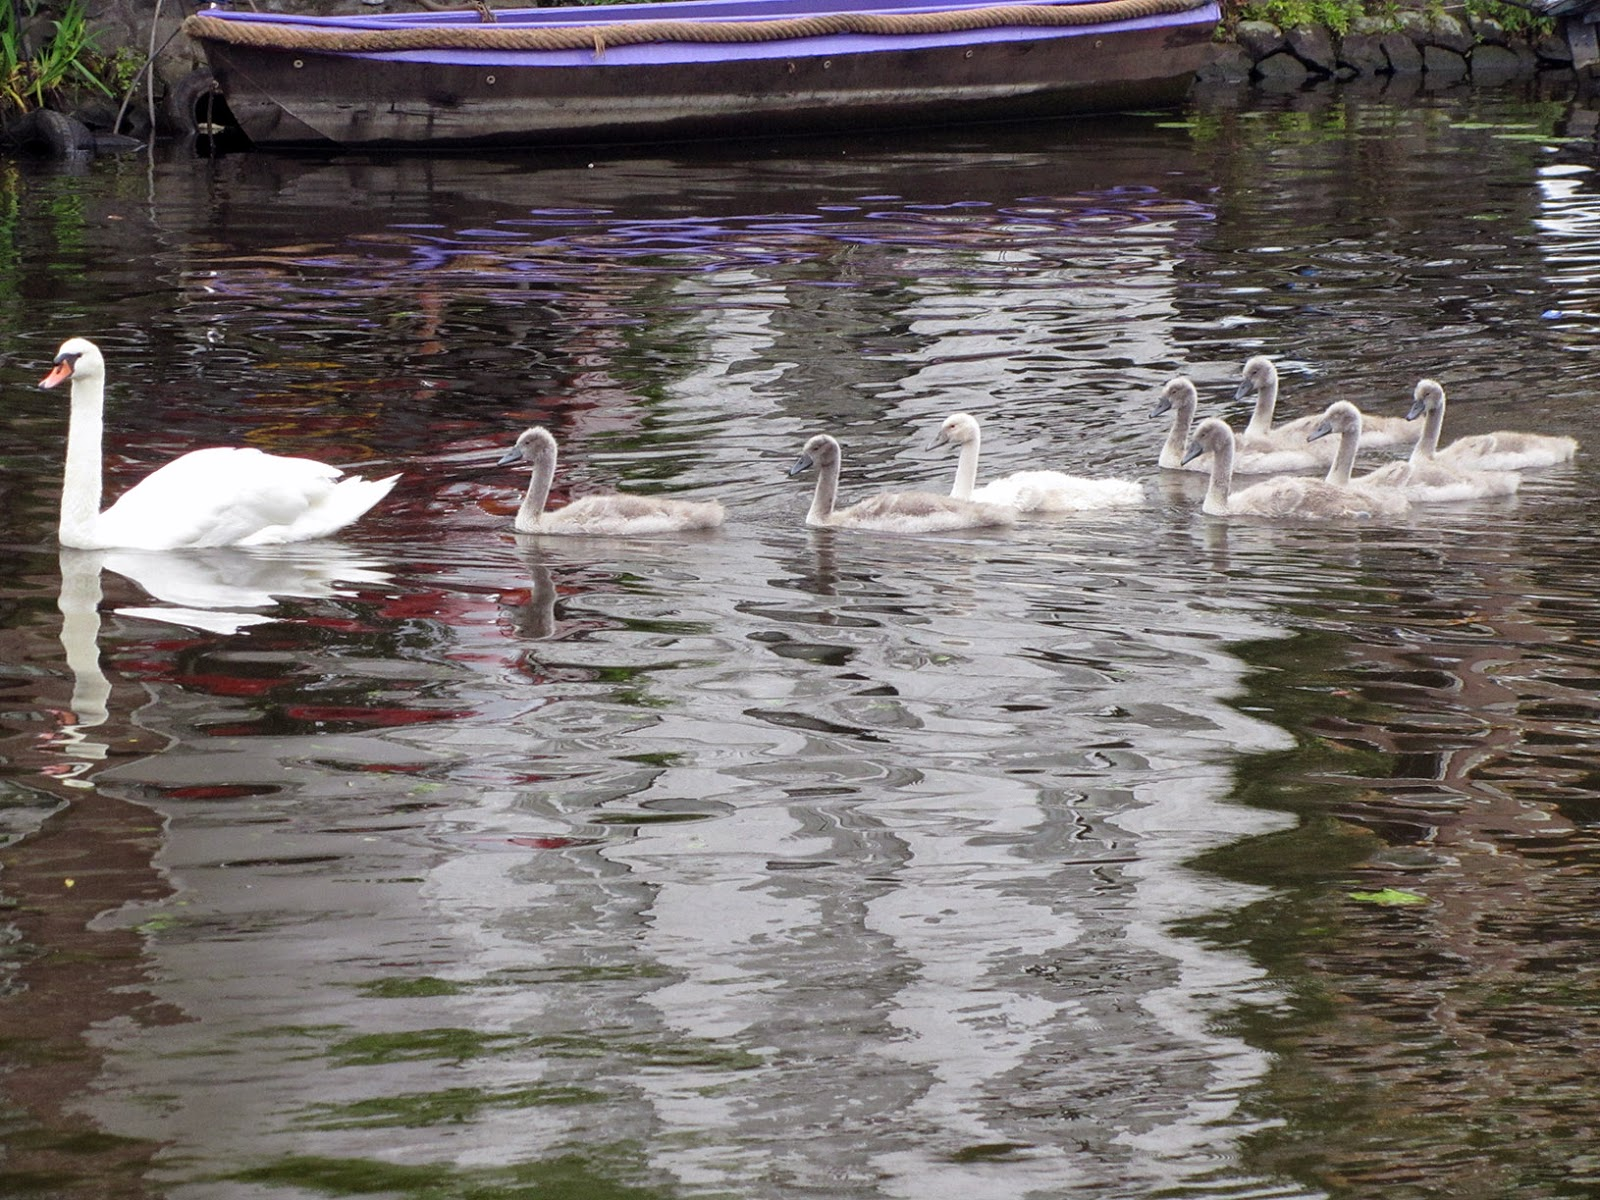 swimming swan and its young ones